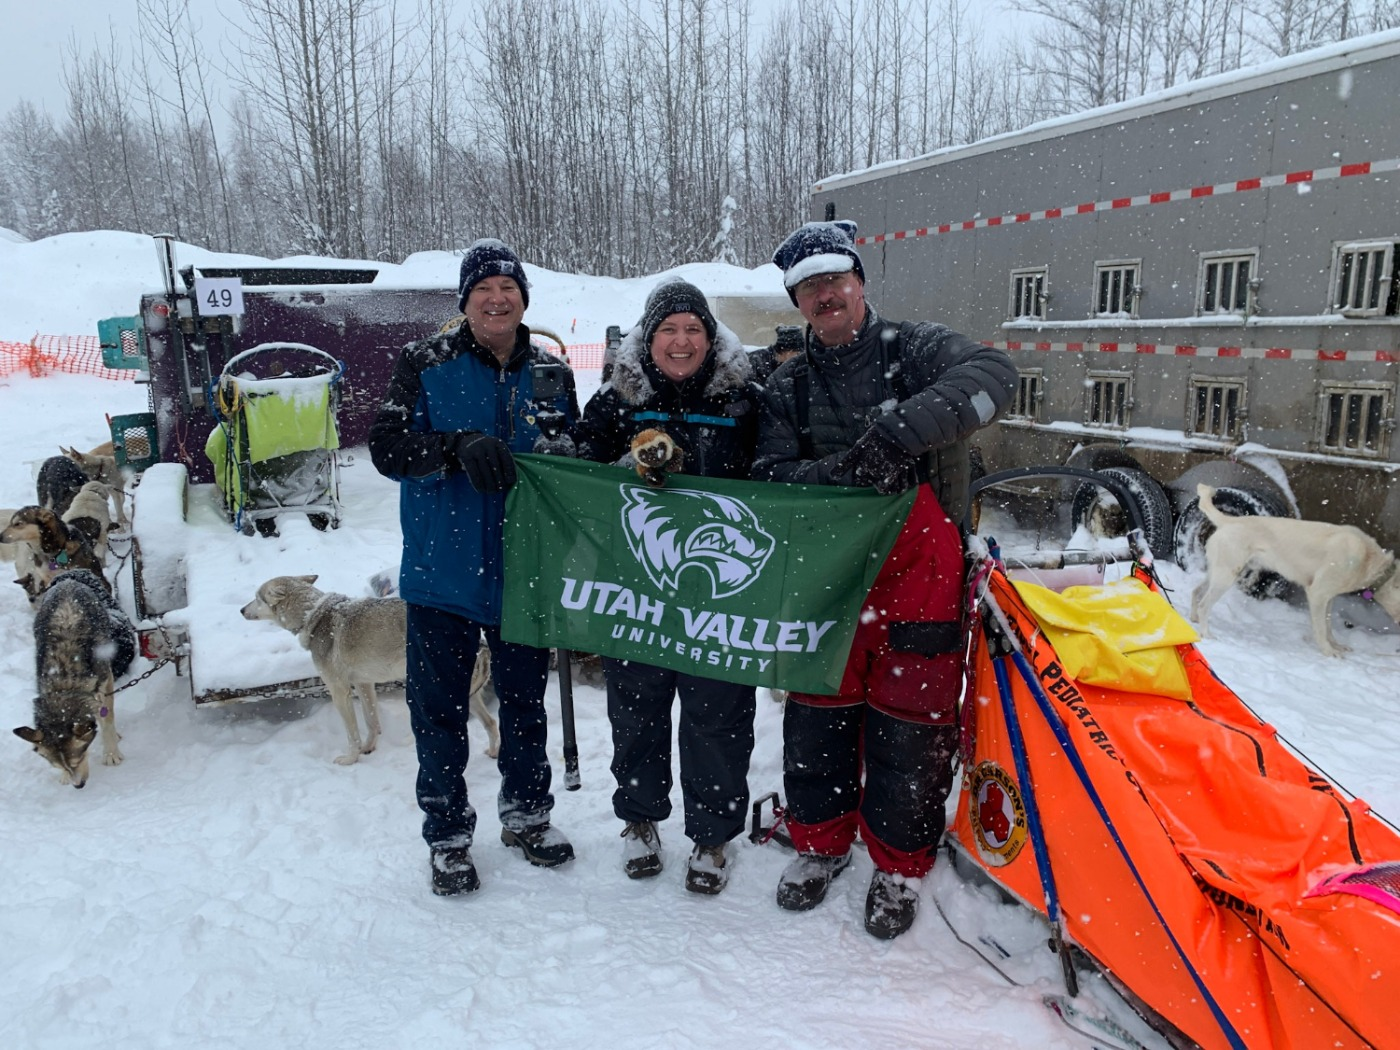 Mike Wisland, Emily Hedrick, and and musher Alan Eischens holding the UVU Flag with sleds and dogs about them.